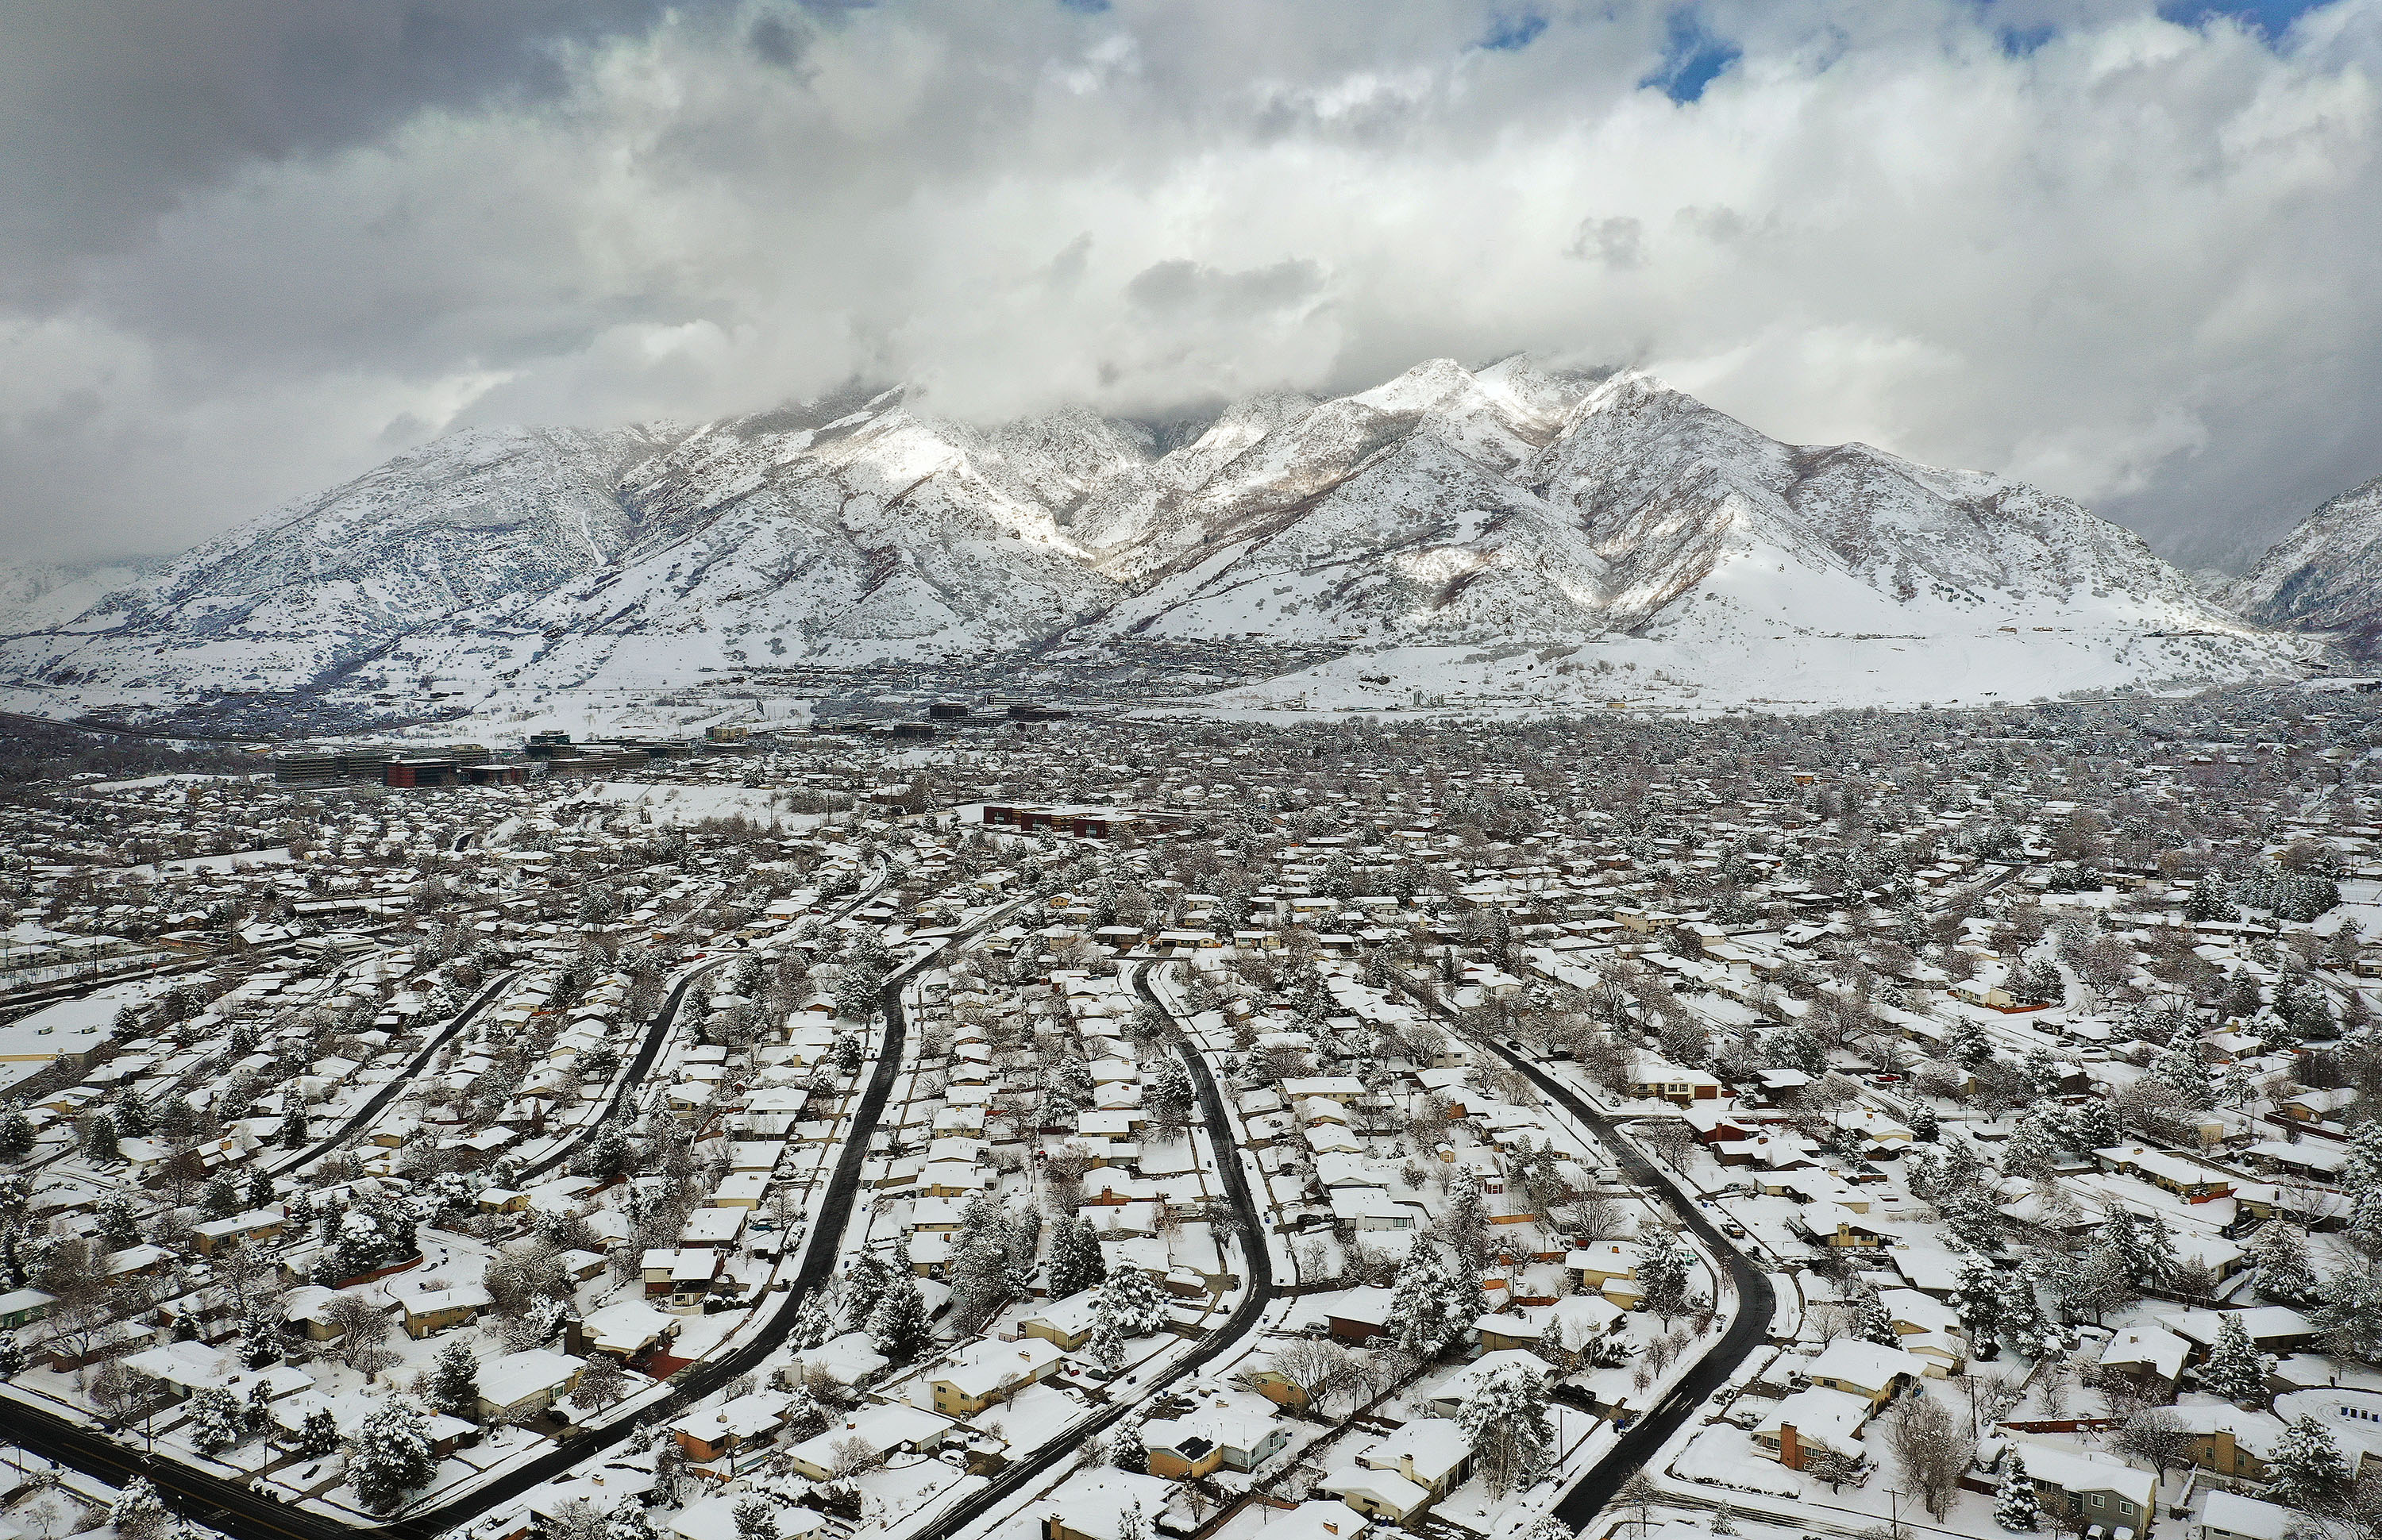 Snow covers the Salt Lake Valley and Wasatch Mountains on Wednesday, Feb. 17, 2021.